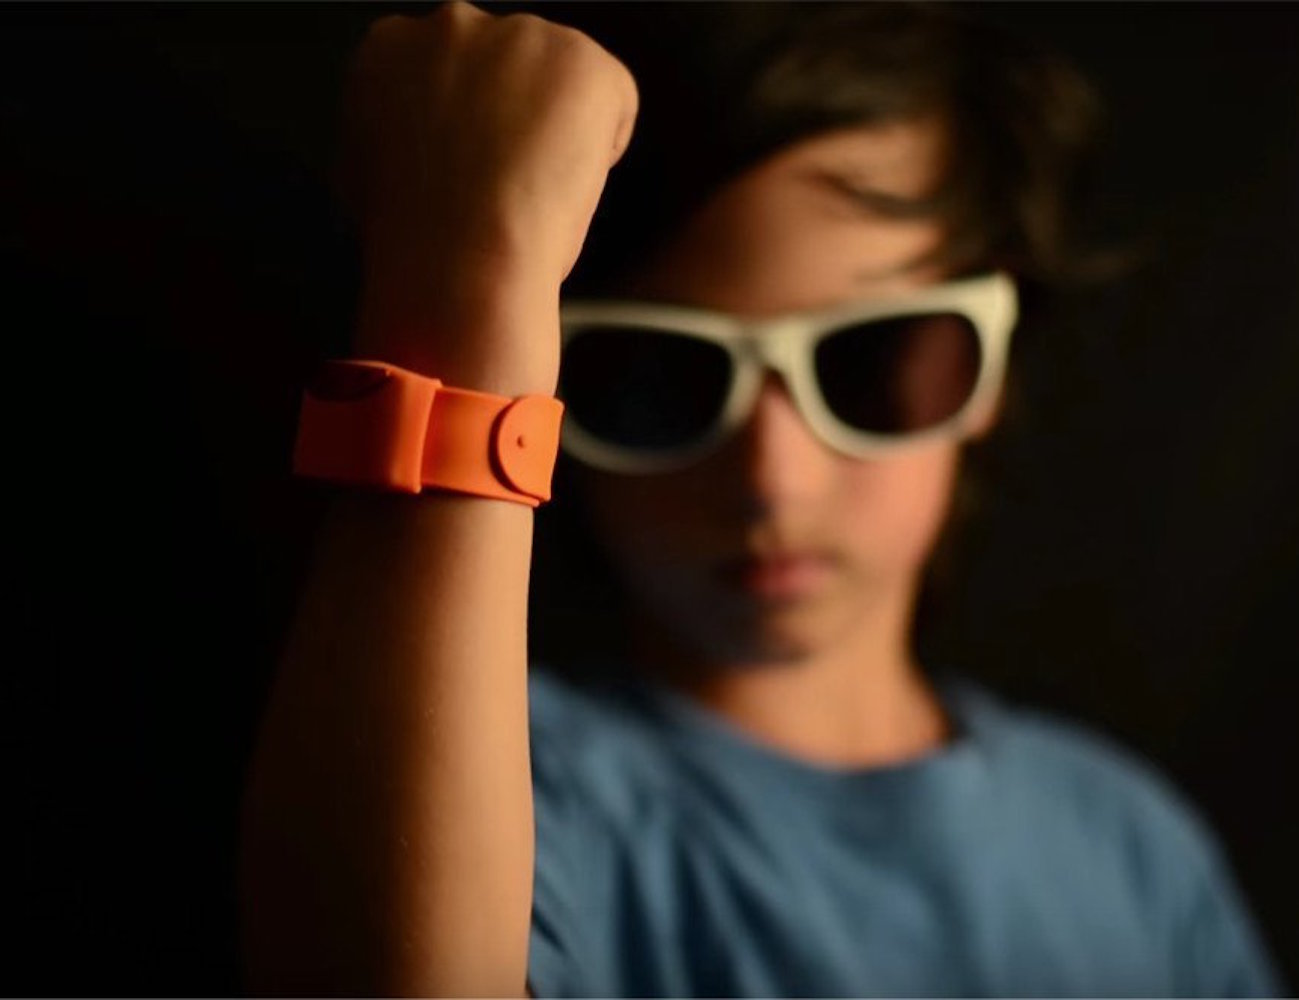 Moff Band – The Wearable Smart Toy